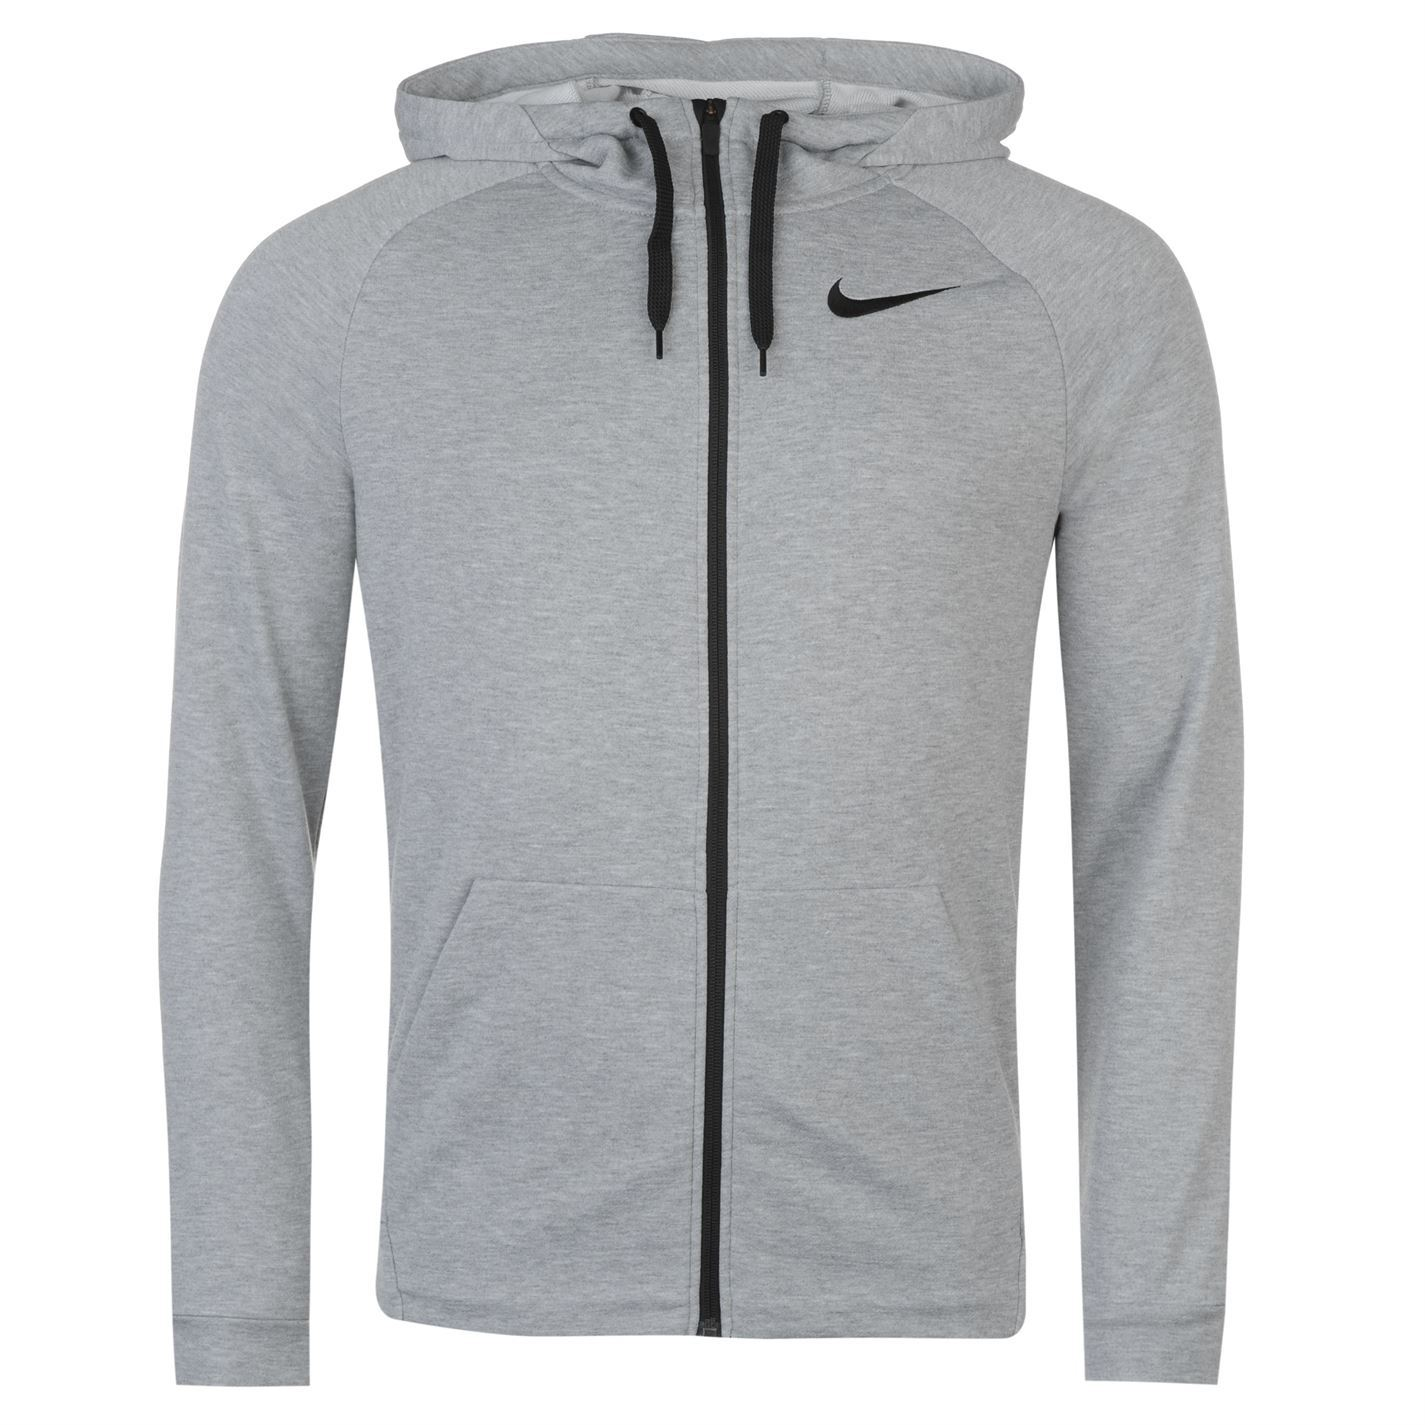 47ec36d90d45 ... Nike Dri-Fit Full Zip Hoody Jacket Mens Hoodie Sweatshirt Sweater Hooded  Top